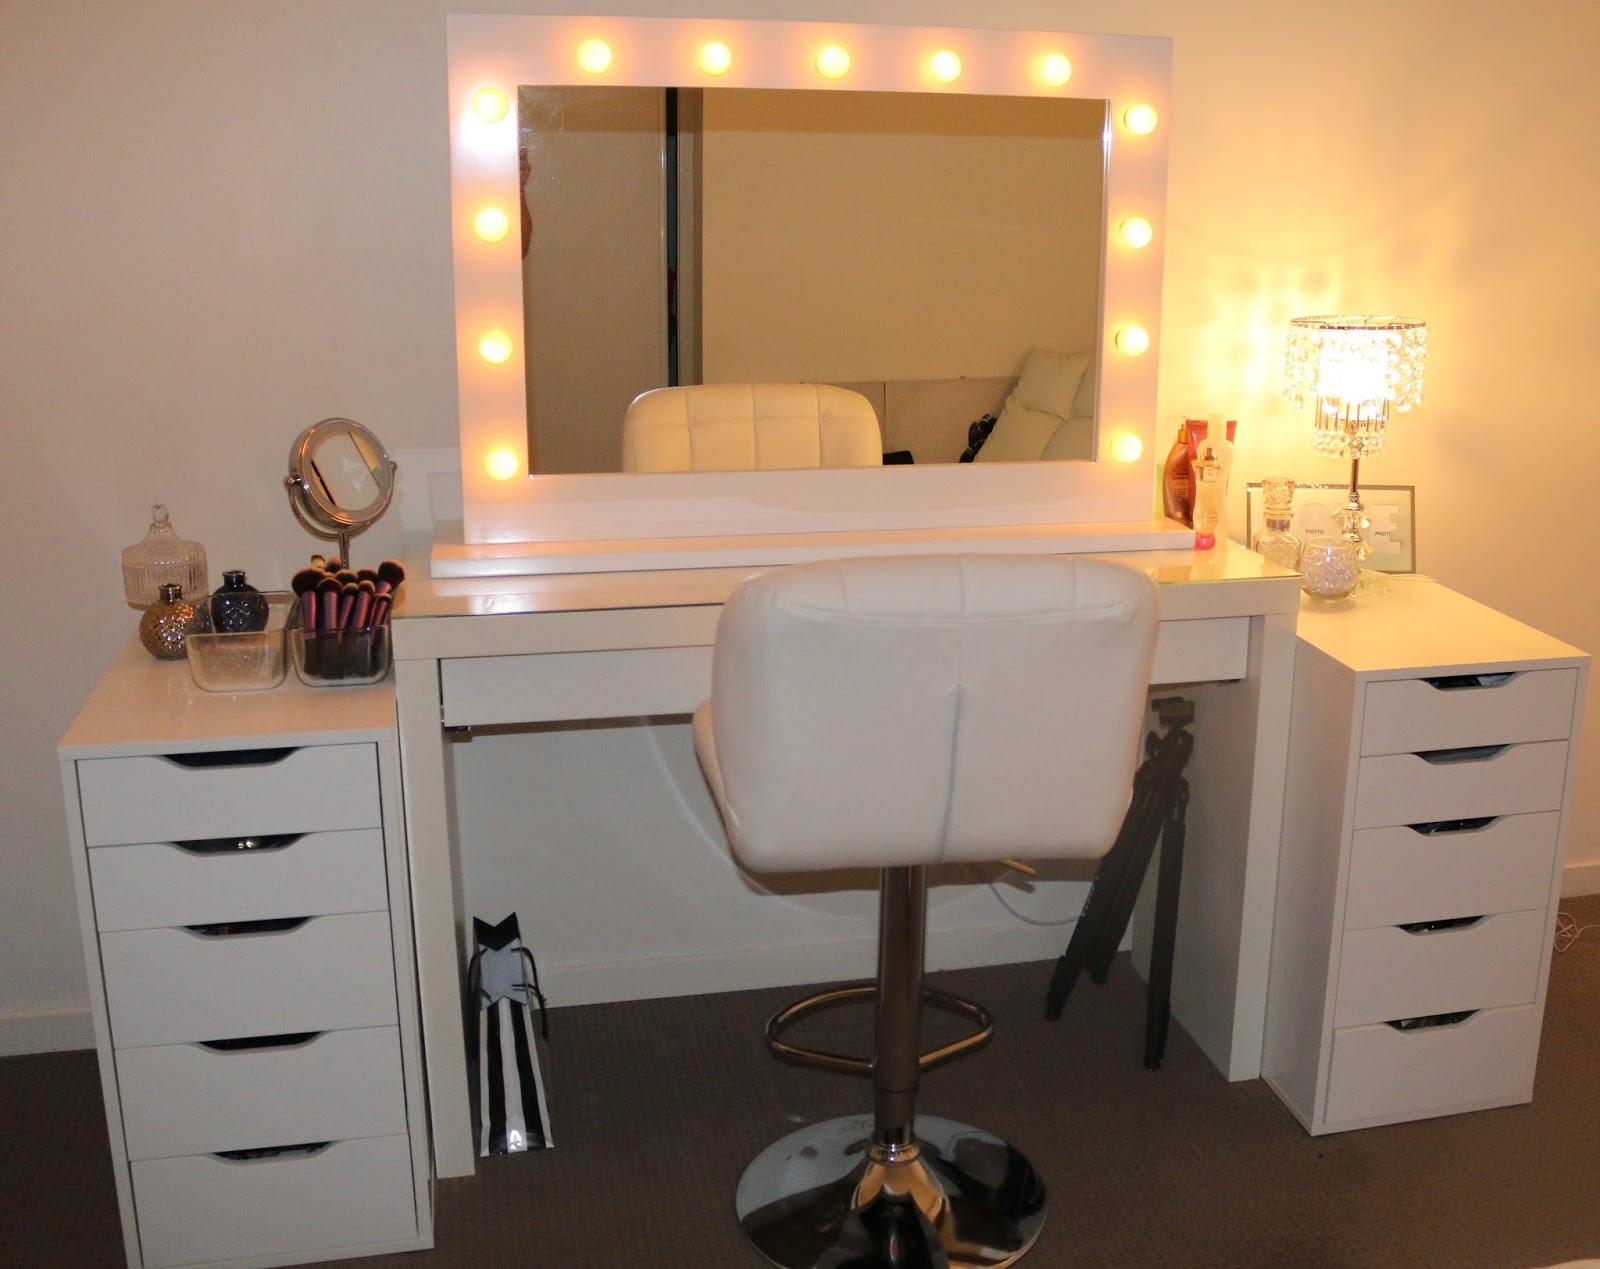 Vanity Mirror With Lights Sam S Club : ROGUE Hair Extensions: IKEA MAKEUP VANITY & HOLLYWOOD LIGHTS!